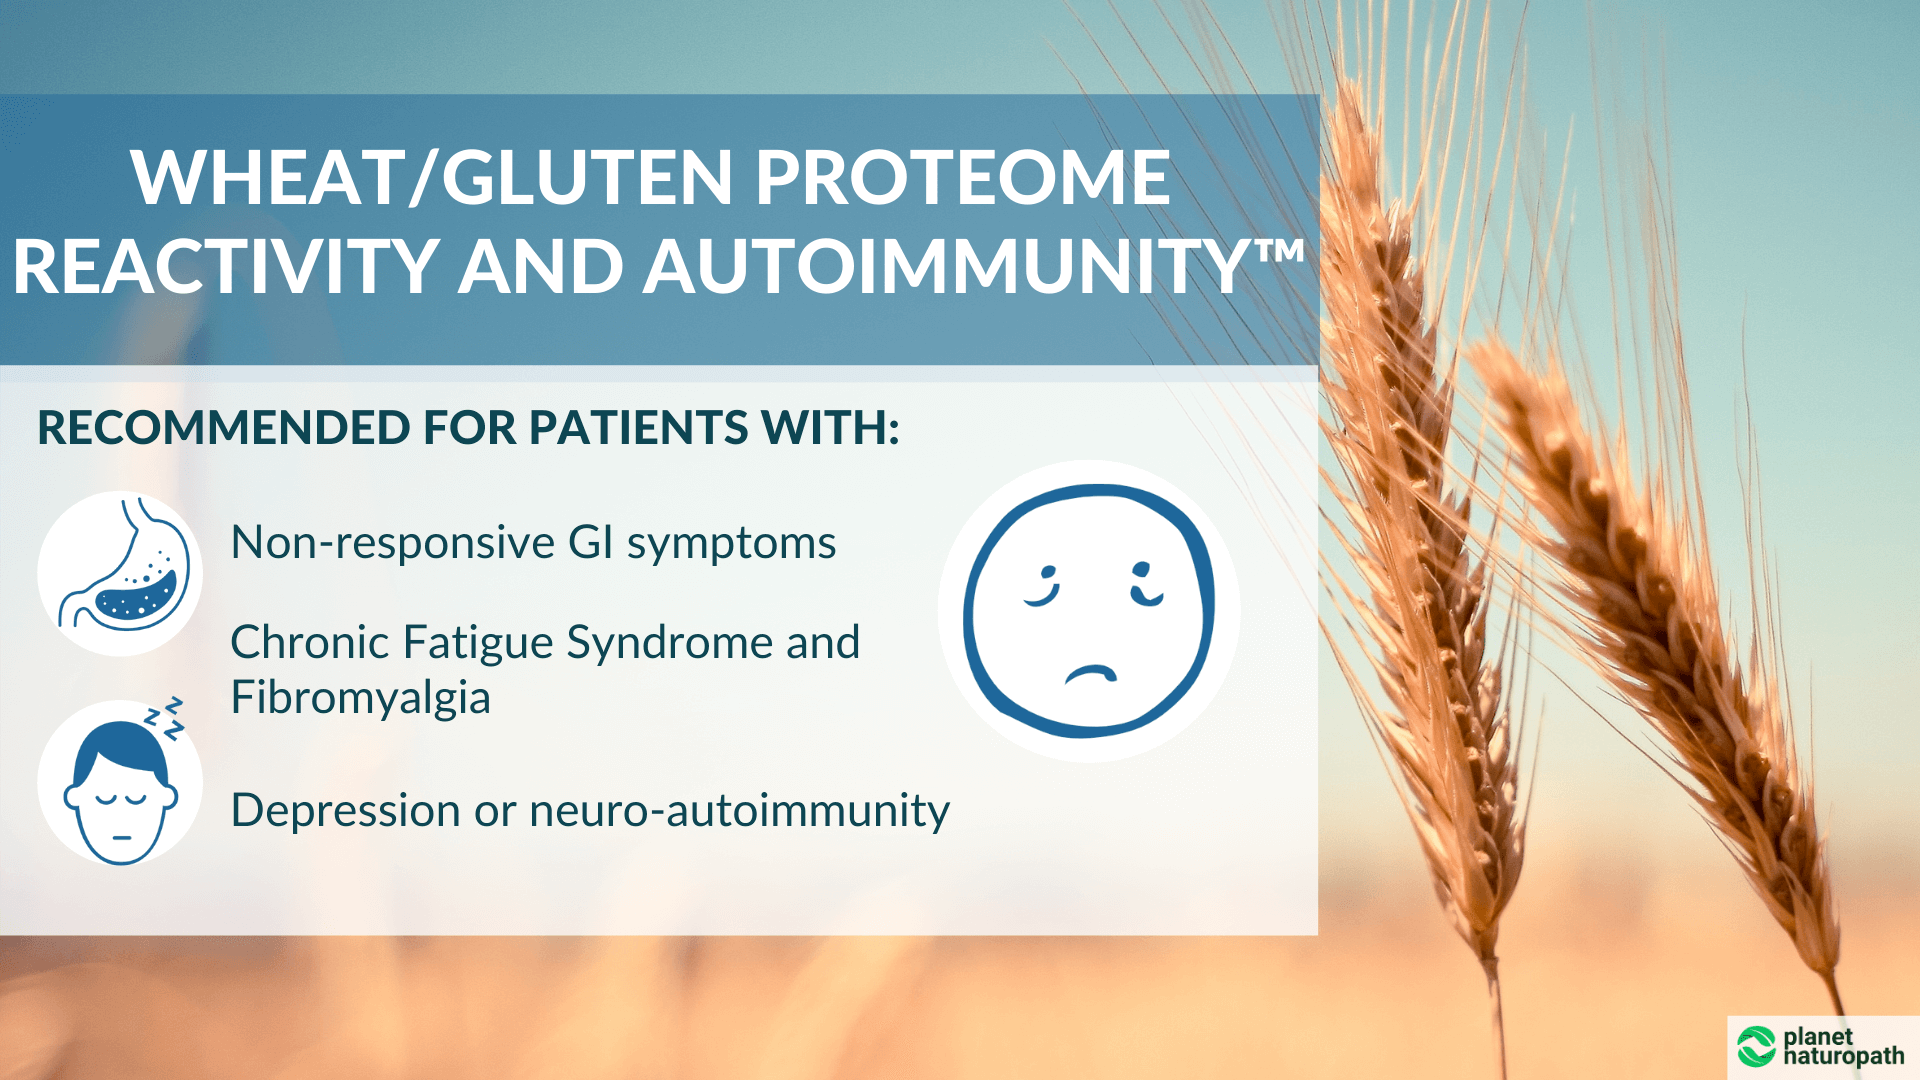 Wheat_Gluten-Proteome-Reactivity-And-Autoimmunity™